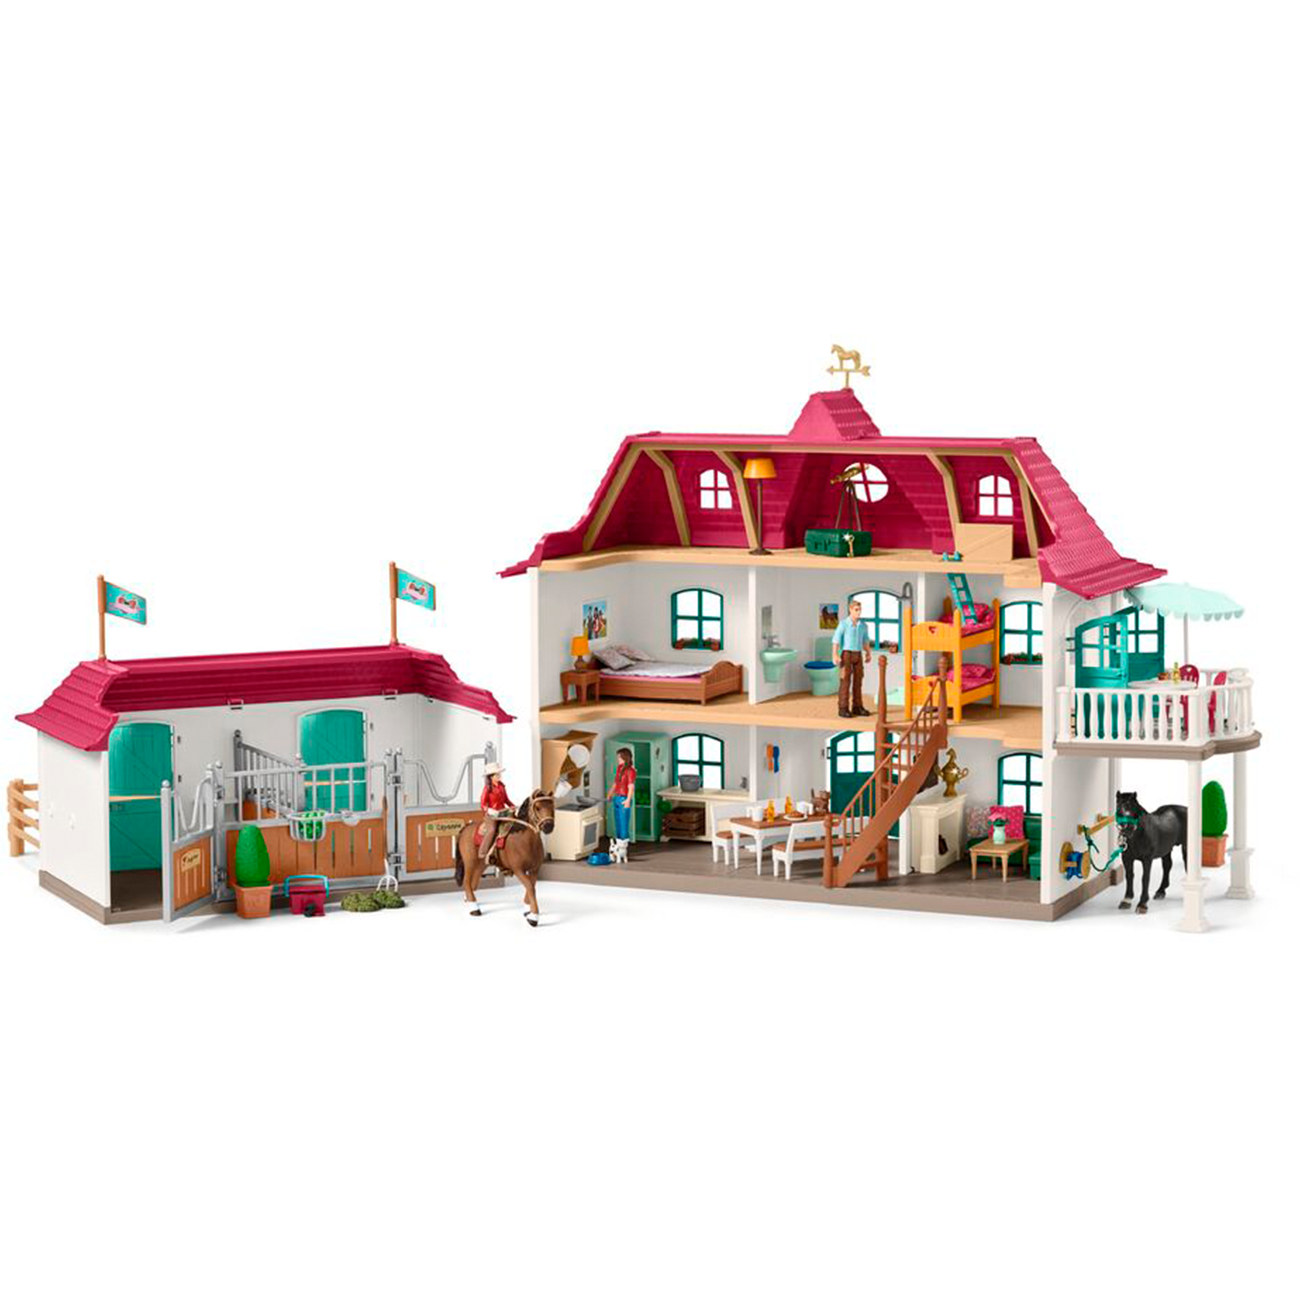 Schleich Horse Club Large House Stable with House and Stable